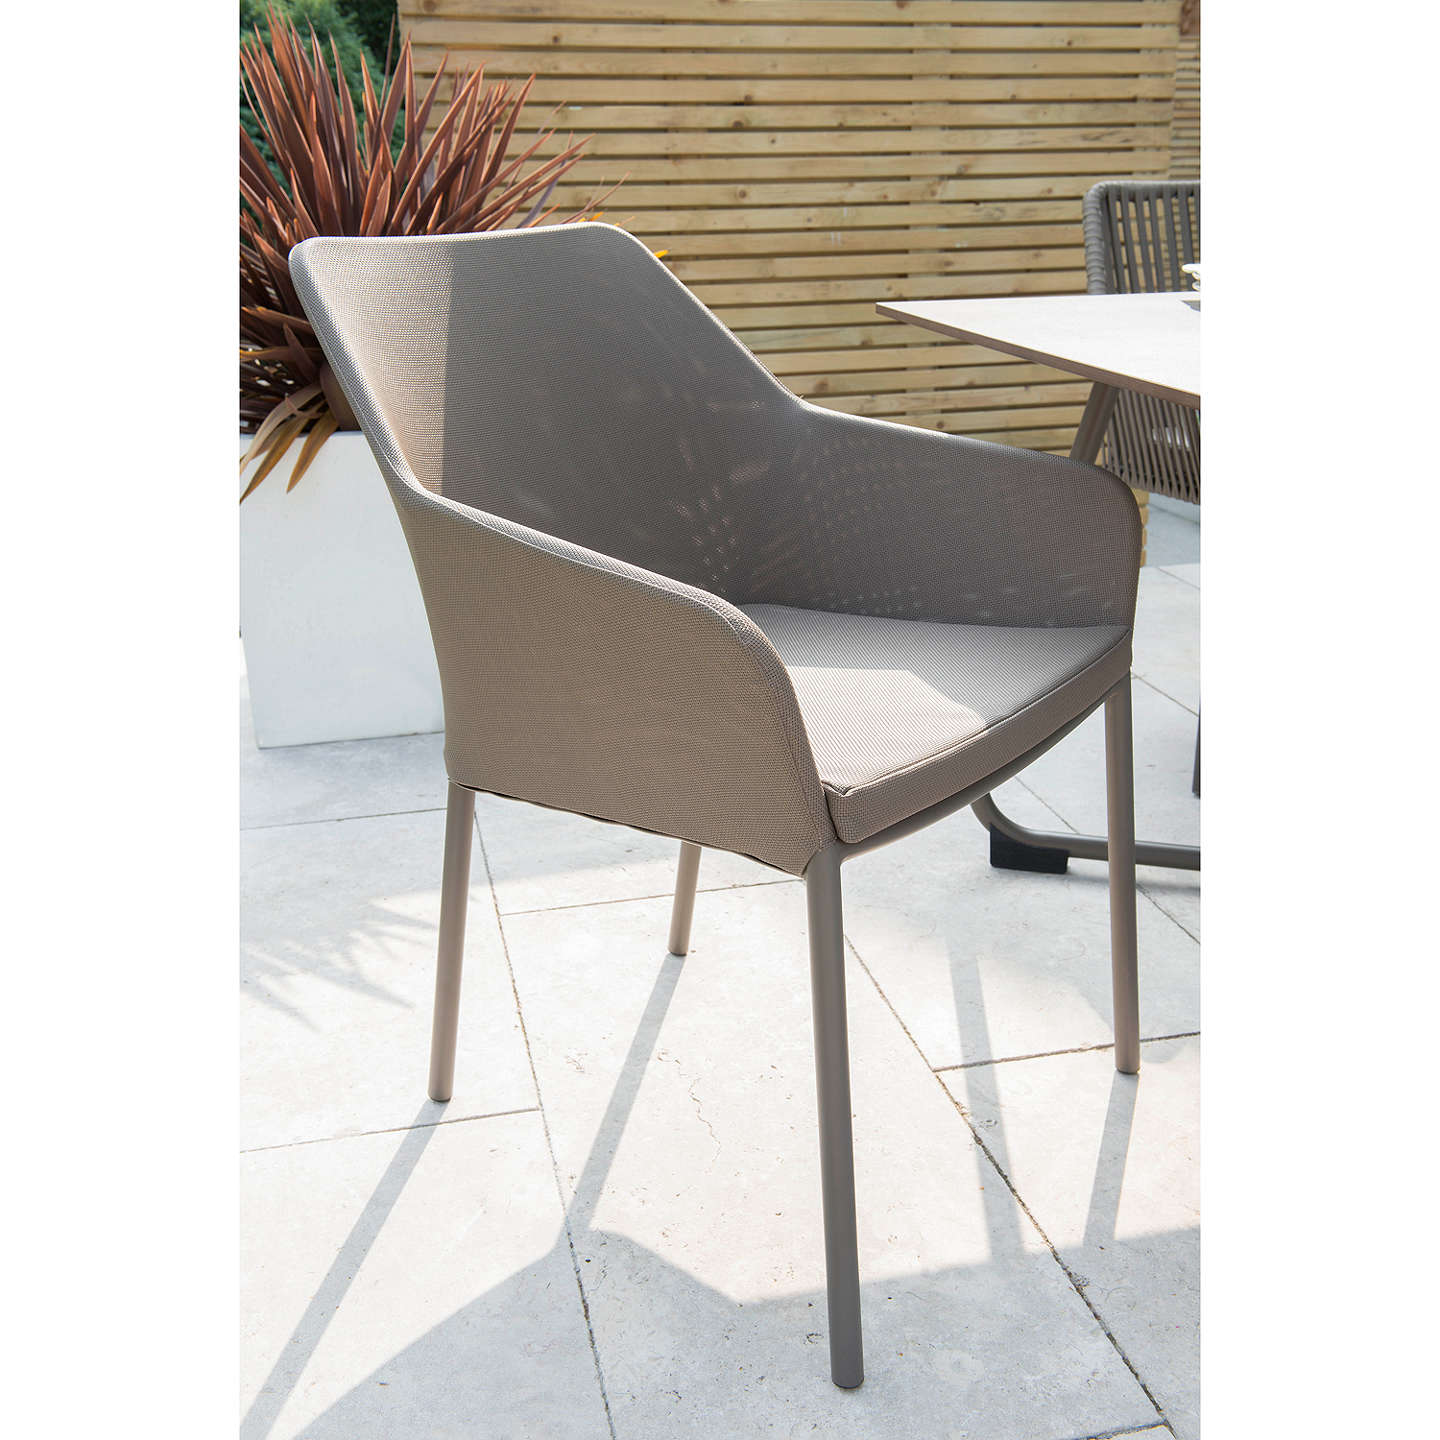 Garden Table And Chairs Set John Lewis: KETTLER Manhattan 6 Seater Garden Table And Wrap Chairs